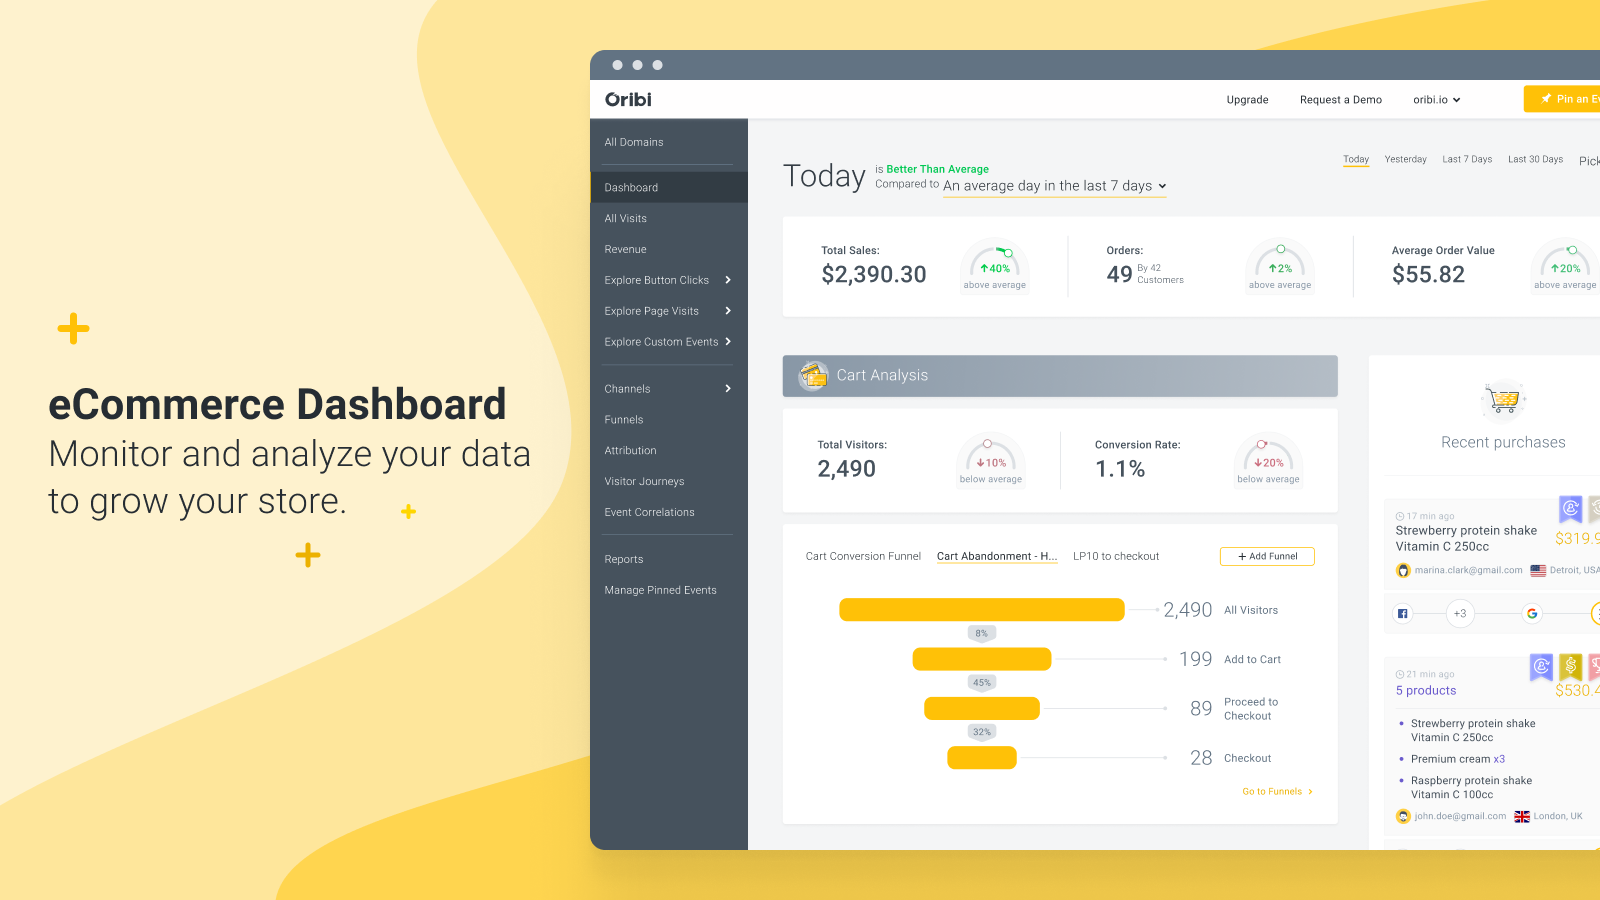 Monitor and analyze your data to grow your store.